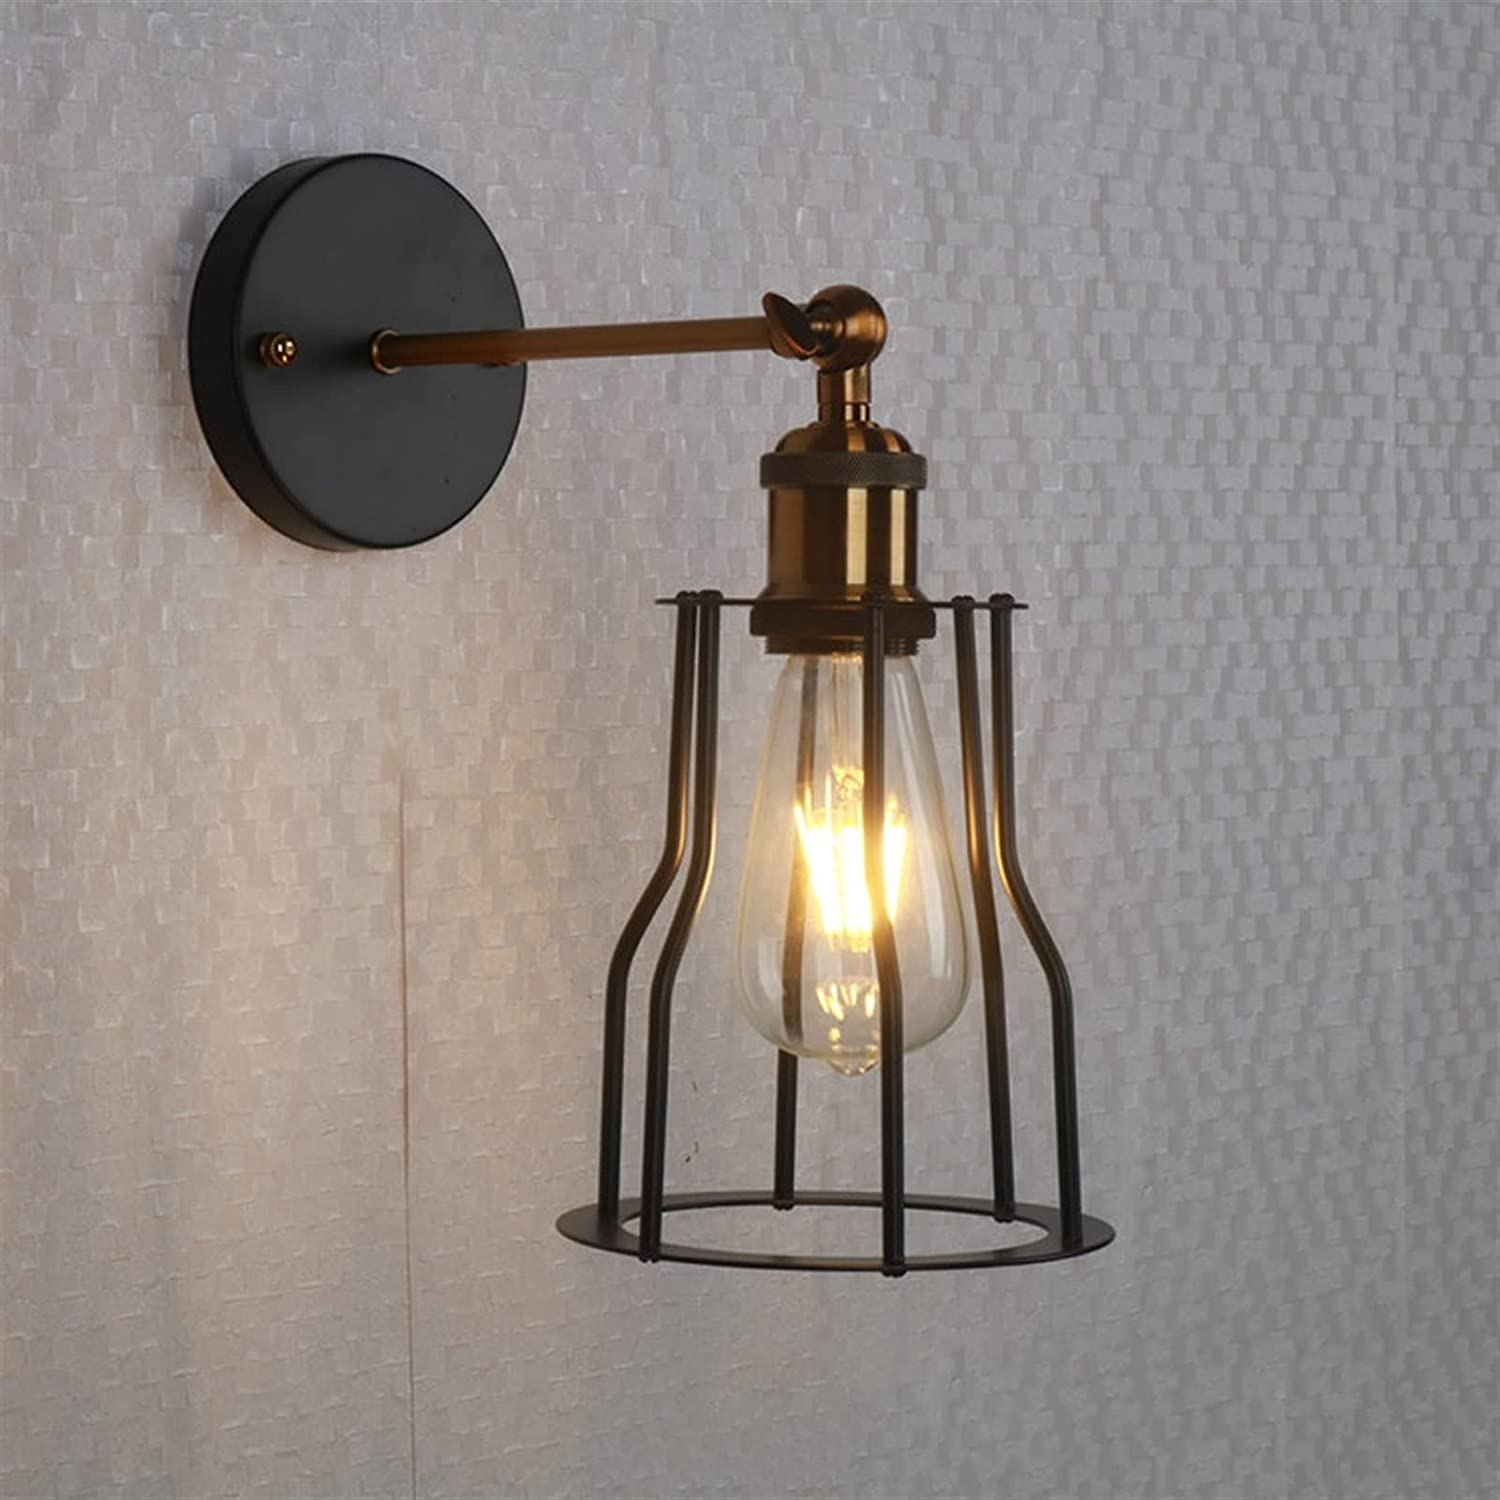 OUUED European Retro Wall Sconces Iron lamp Lights Direct store Quantity limited Indoor Metal